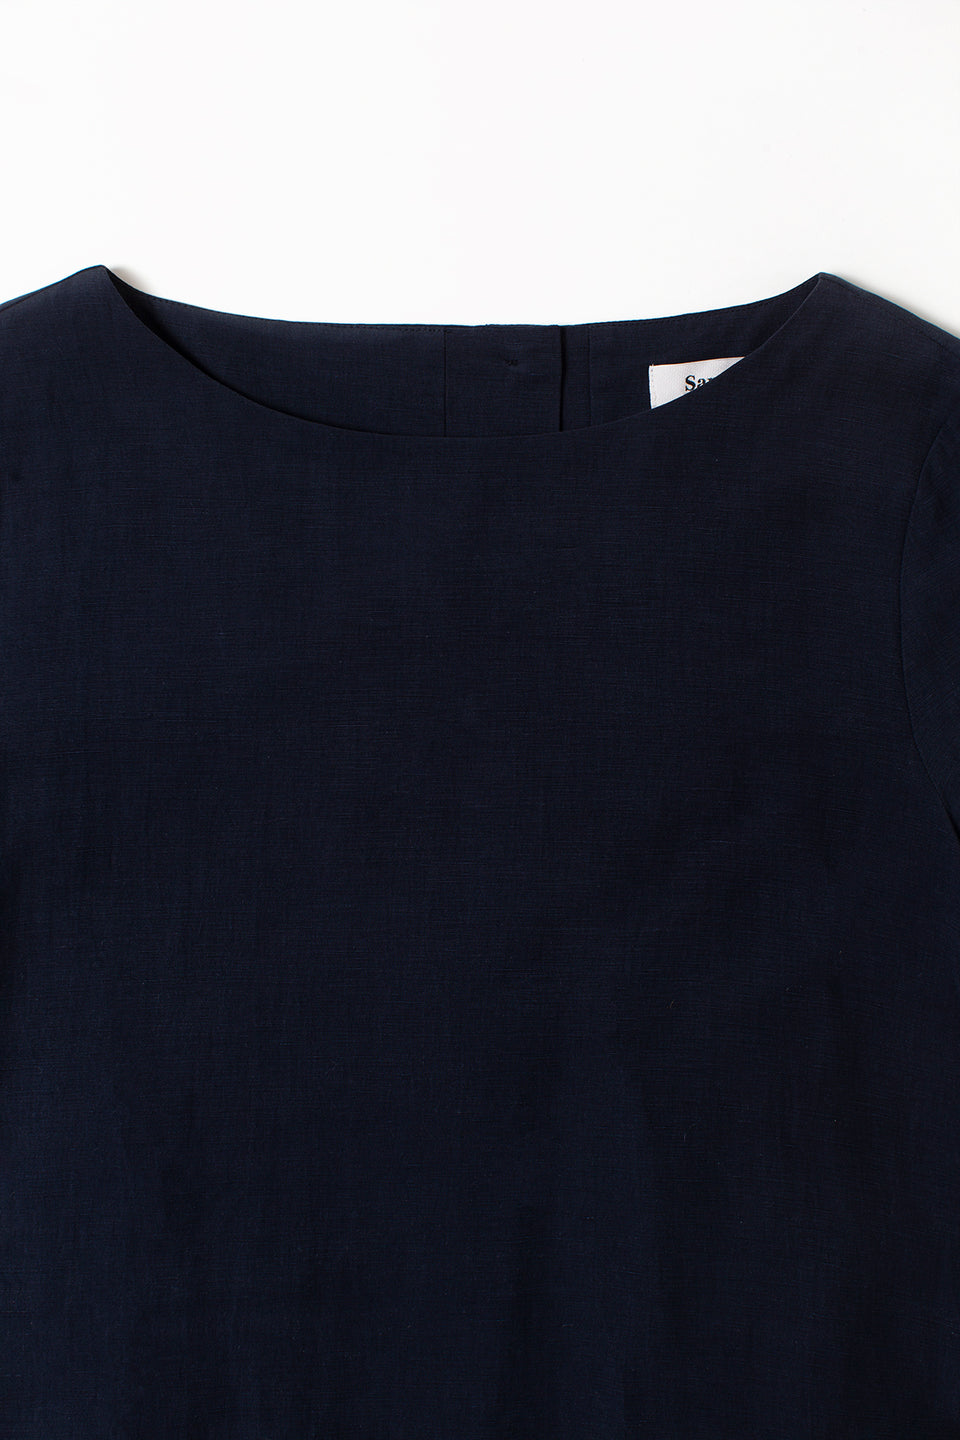 Samuji Finch Dress Matt Silk Navy detail